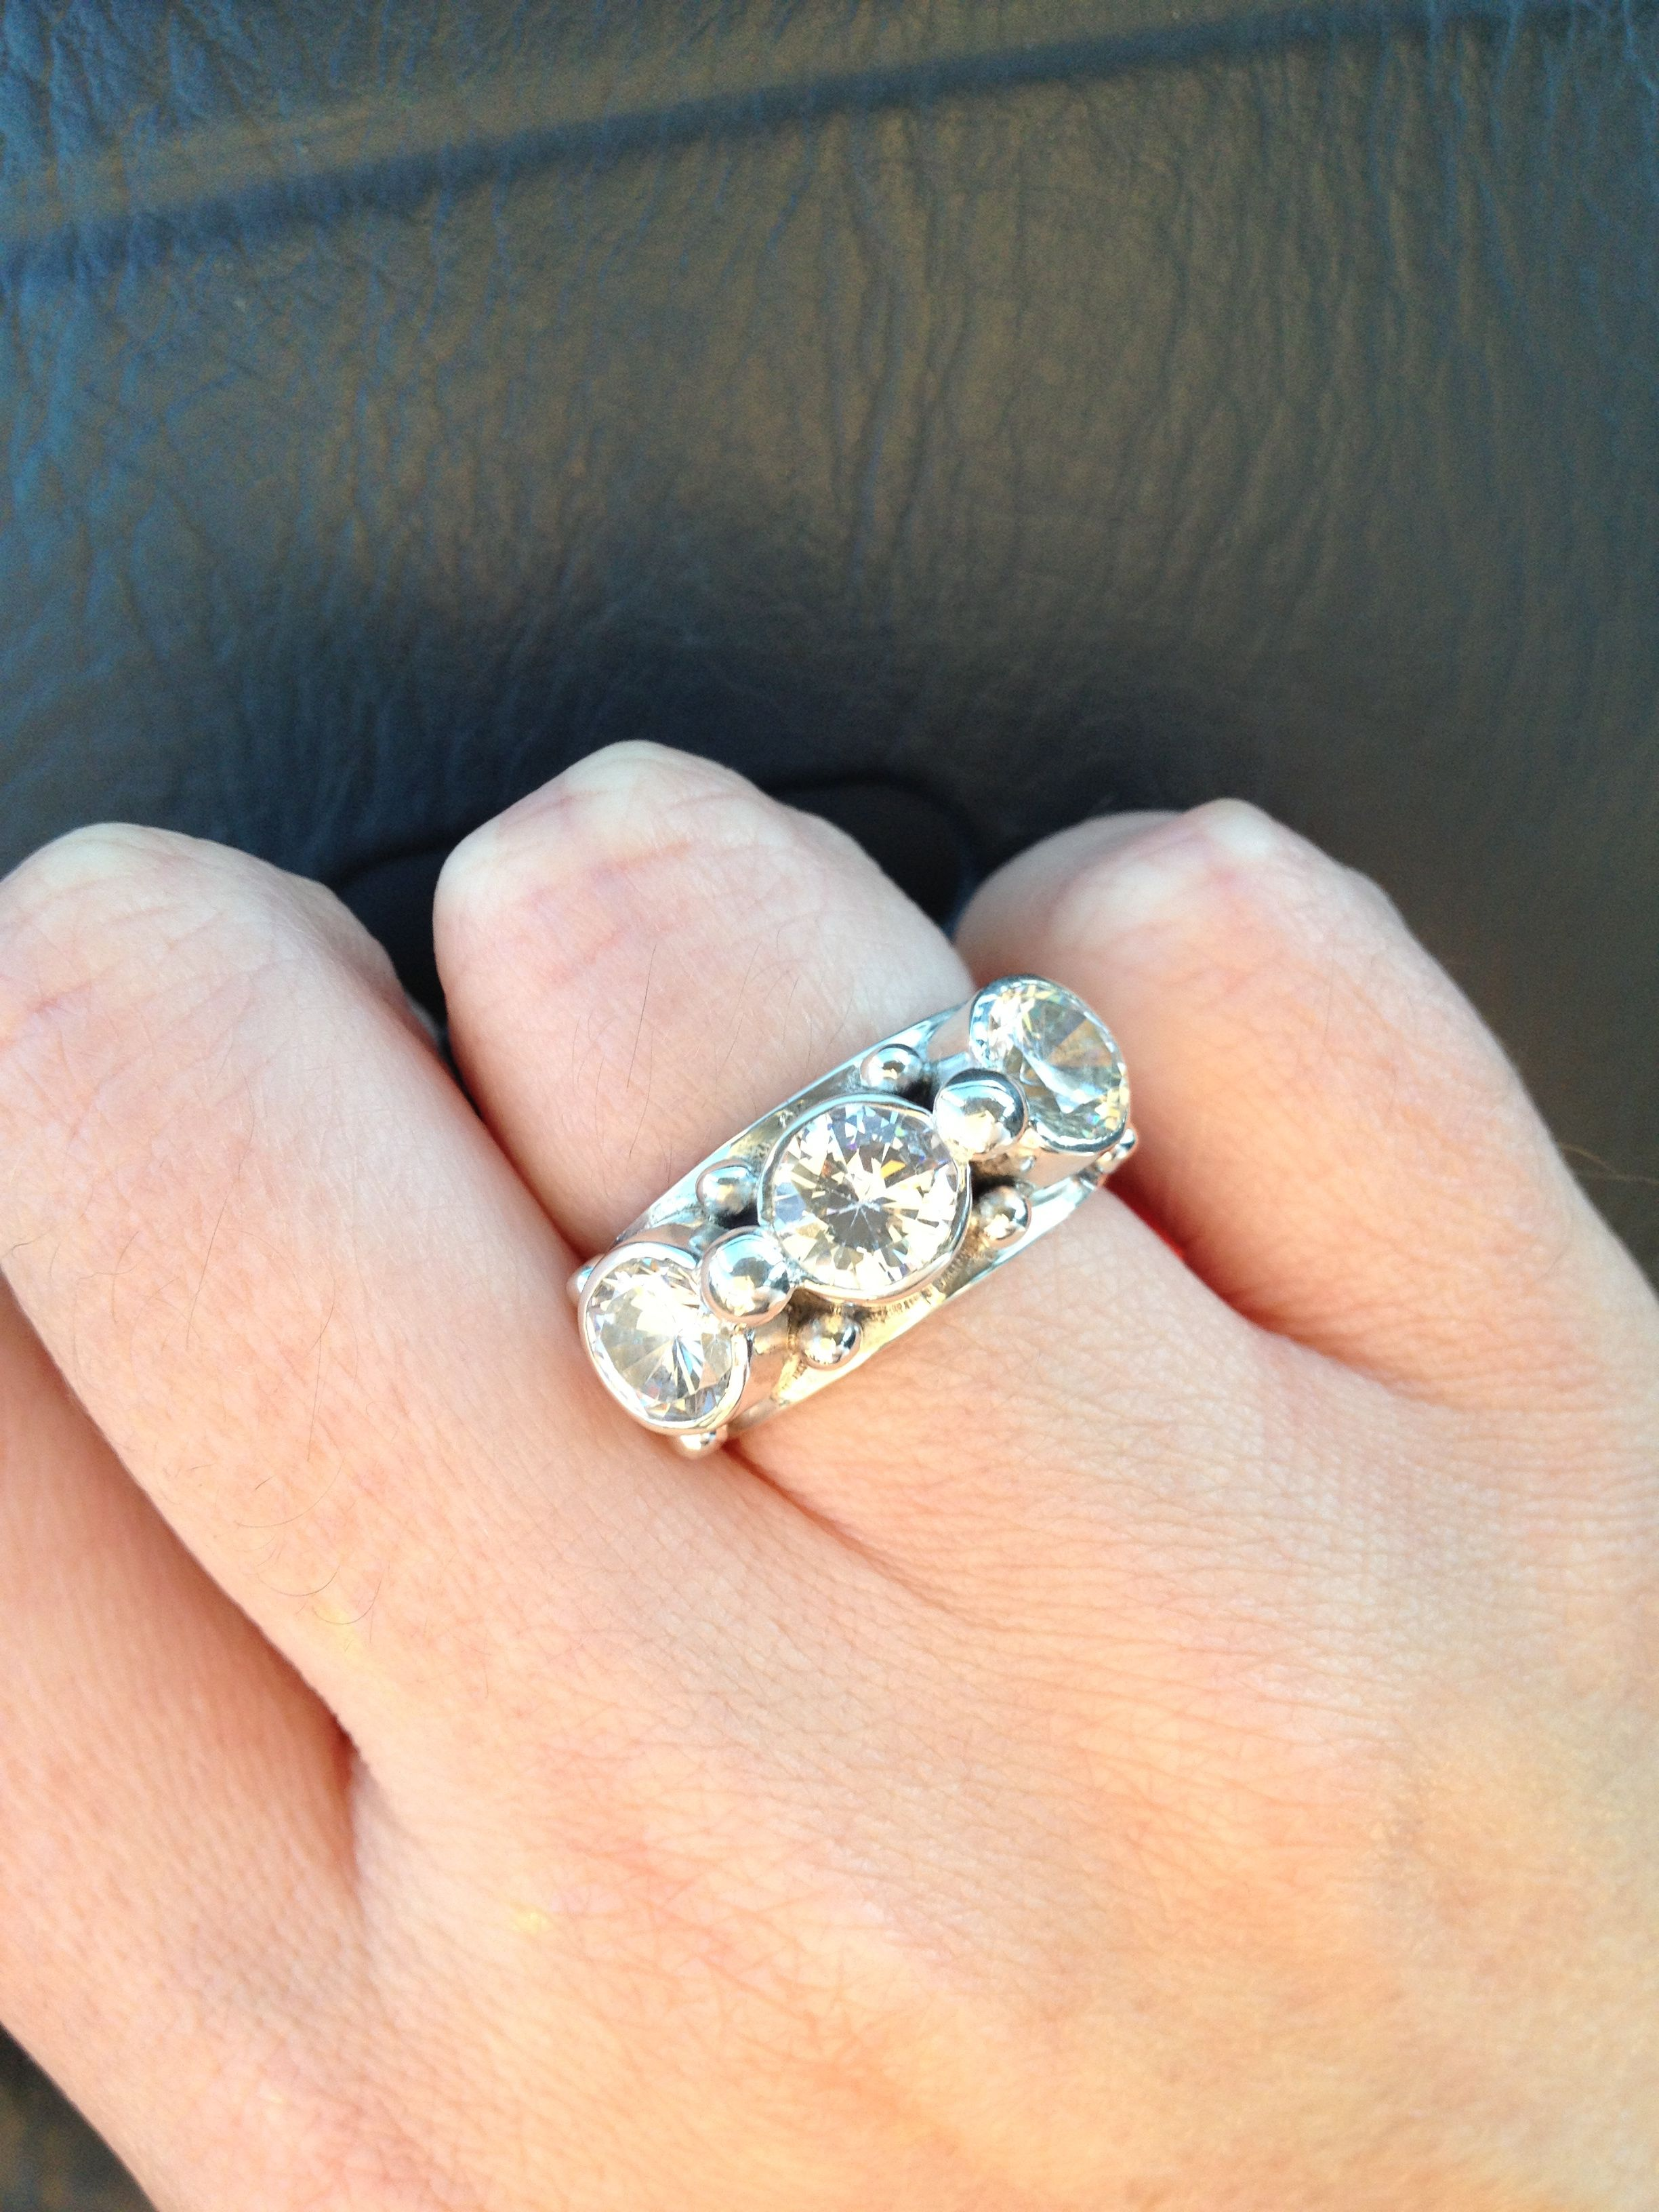 engagement rings jewelers page ring blog lee finance raton to raymond blingy boca how